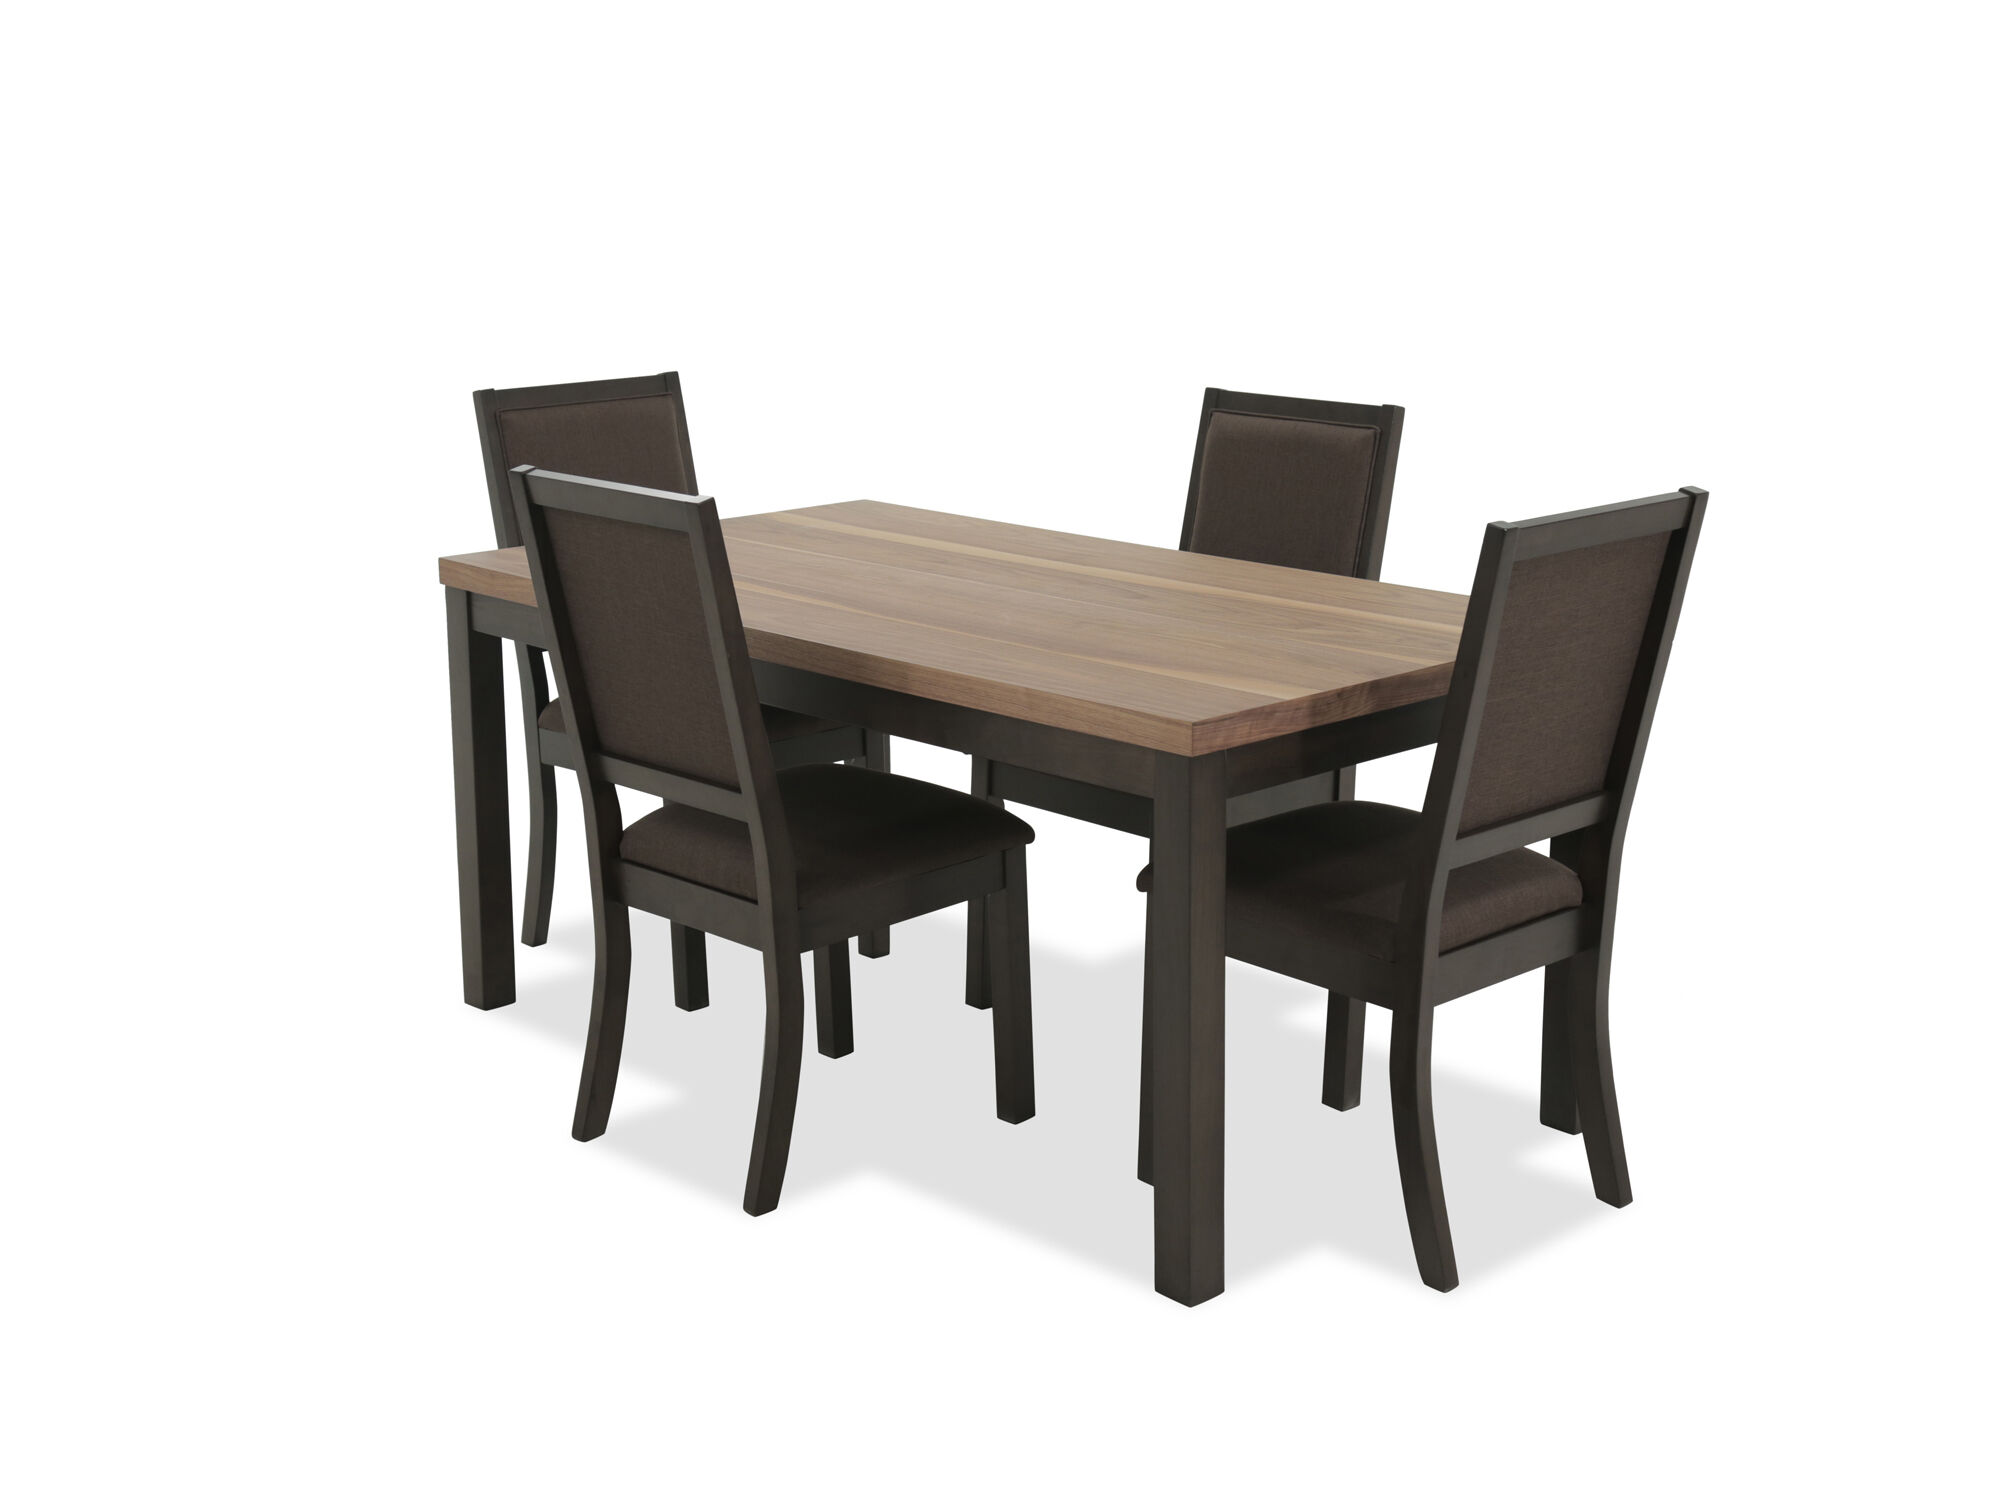 ... On This Contemporary Dining Set Easily Infuses Sophisticated Appeal To  Any Type Of Dining Room Interior. Stylish And Comfortable, This Five Piece  Dining ...